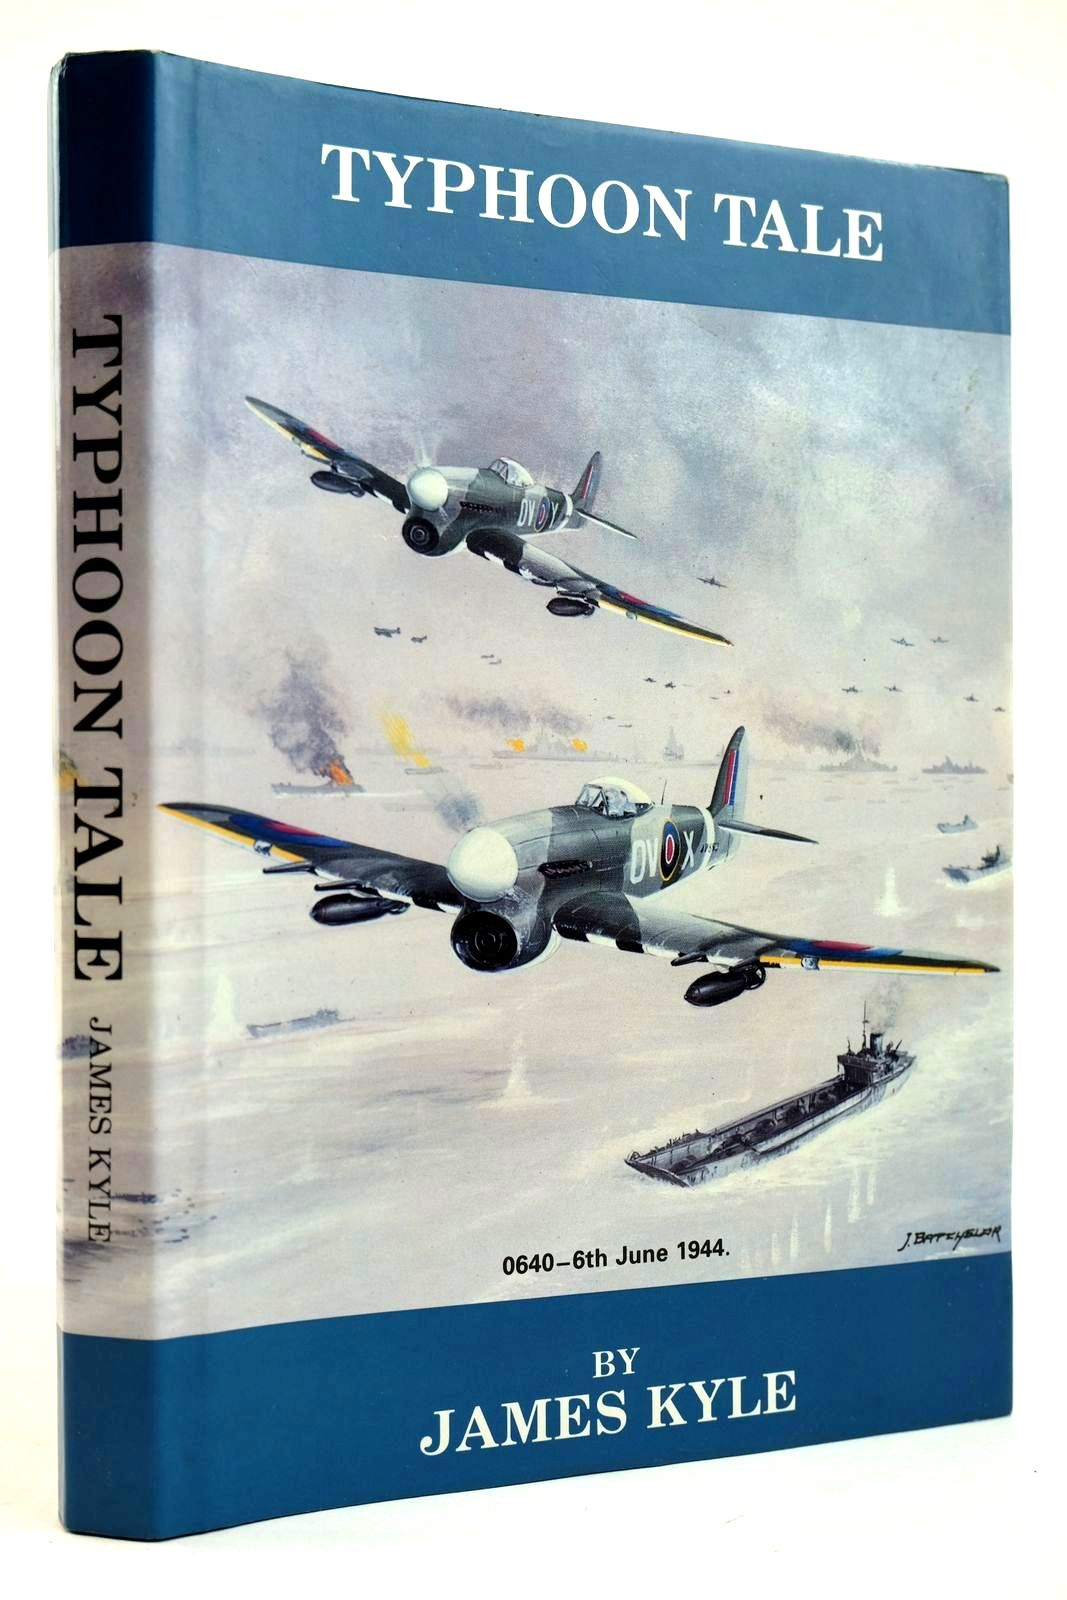 Photo of TYPHOON TALE written by Kyle, James published by Biggar & Co. (publishers) Ltd. (STOCK CODE: 2132086)  for sale by Stella & Rose's Books